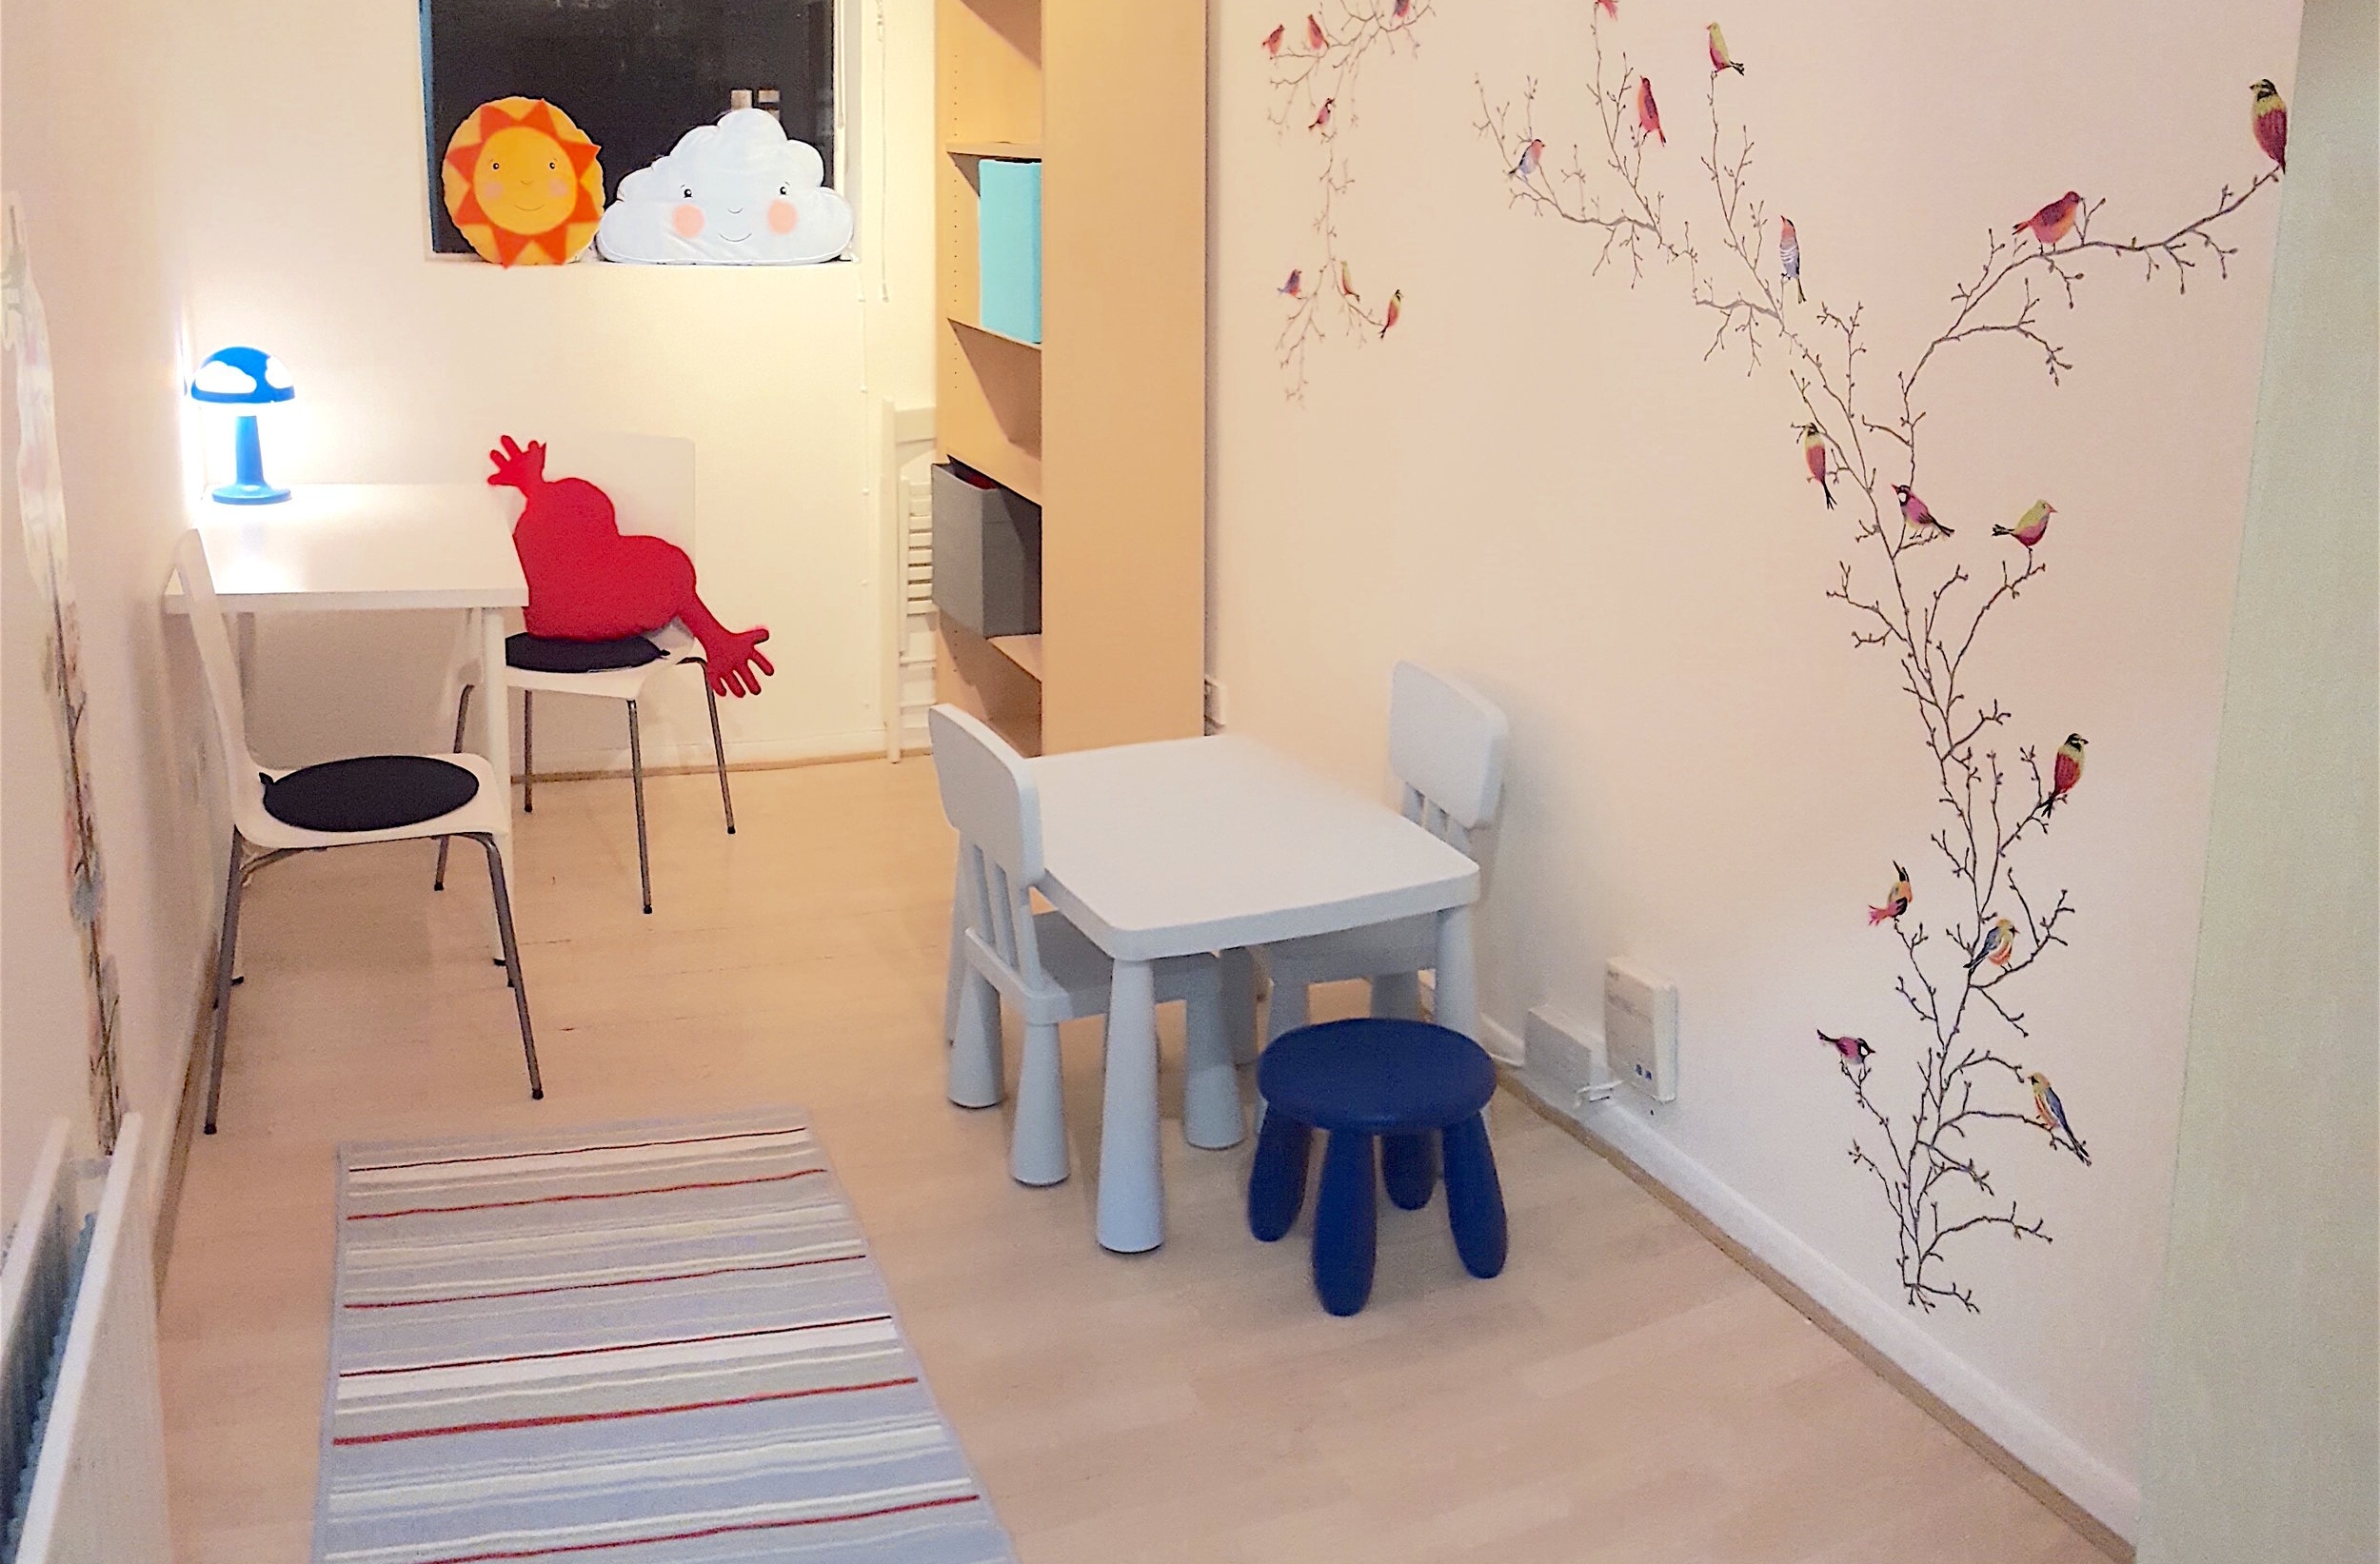 Wandsworth London clinic therapy room